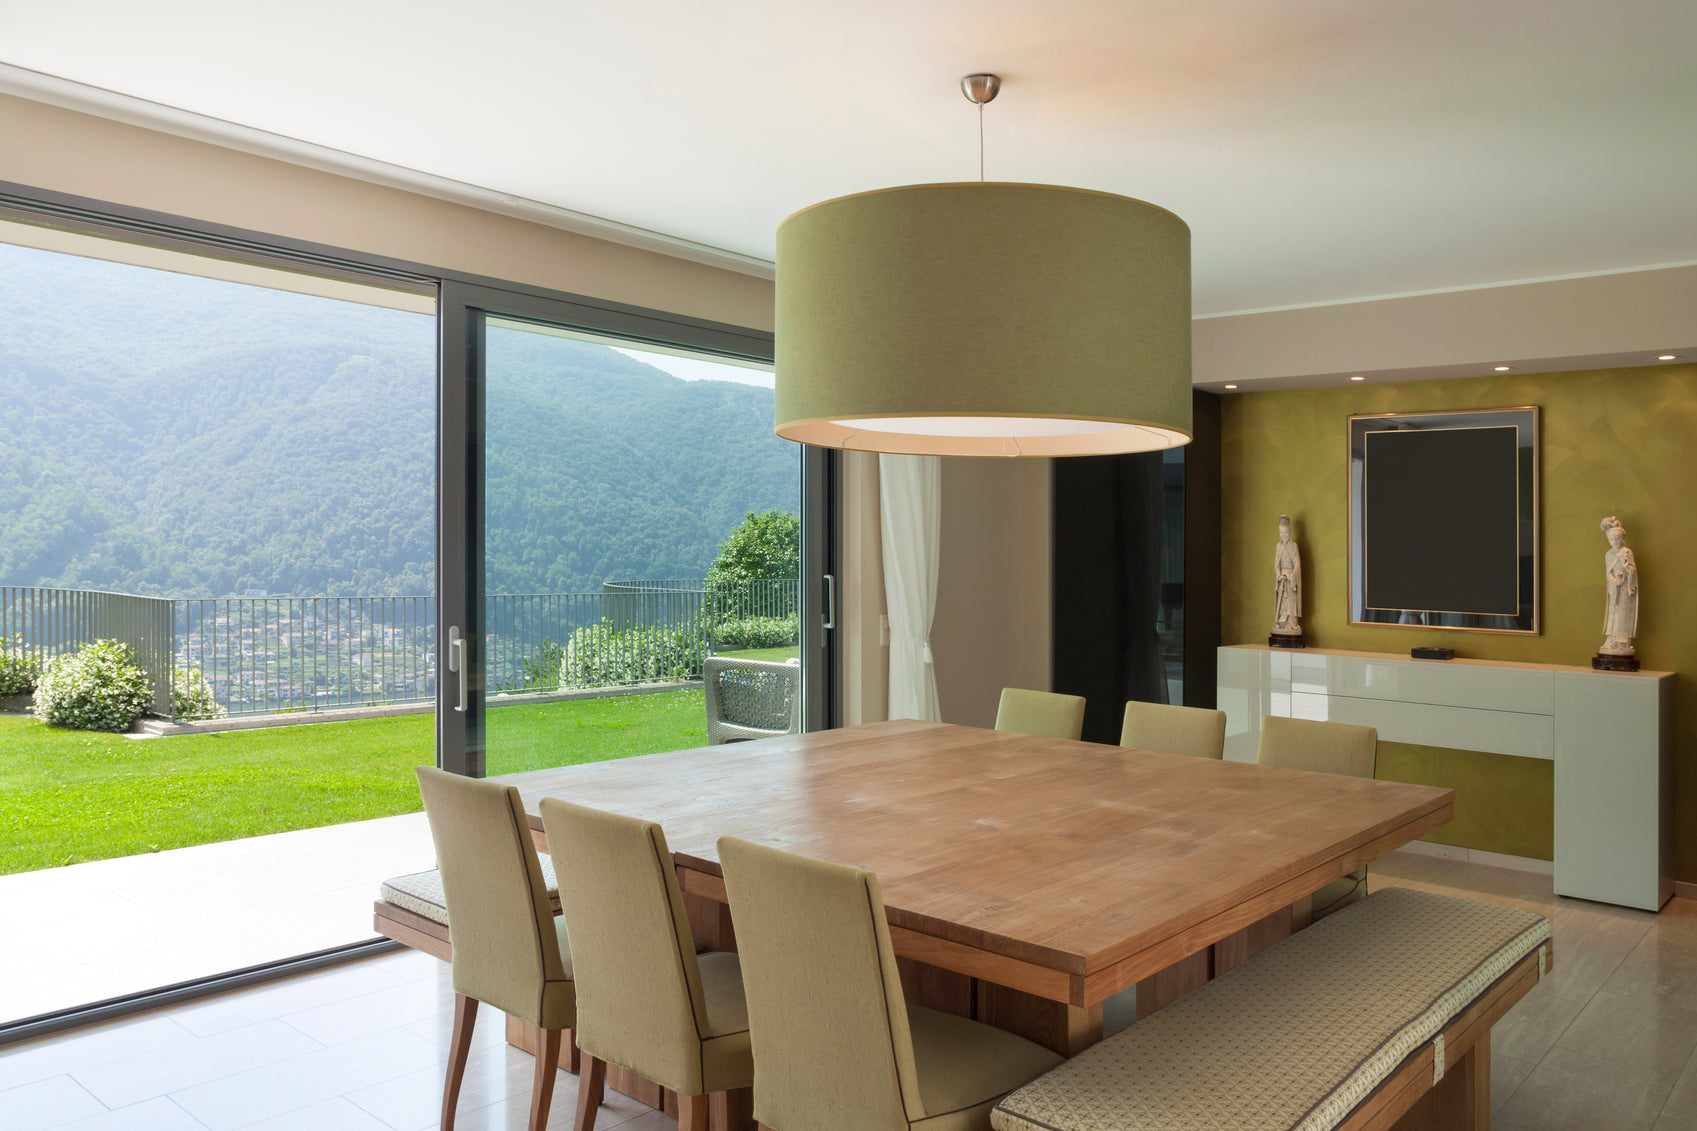 Use a variety of seating options including benches and armless chairs, in a big dining room